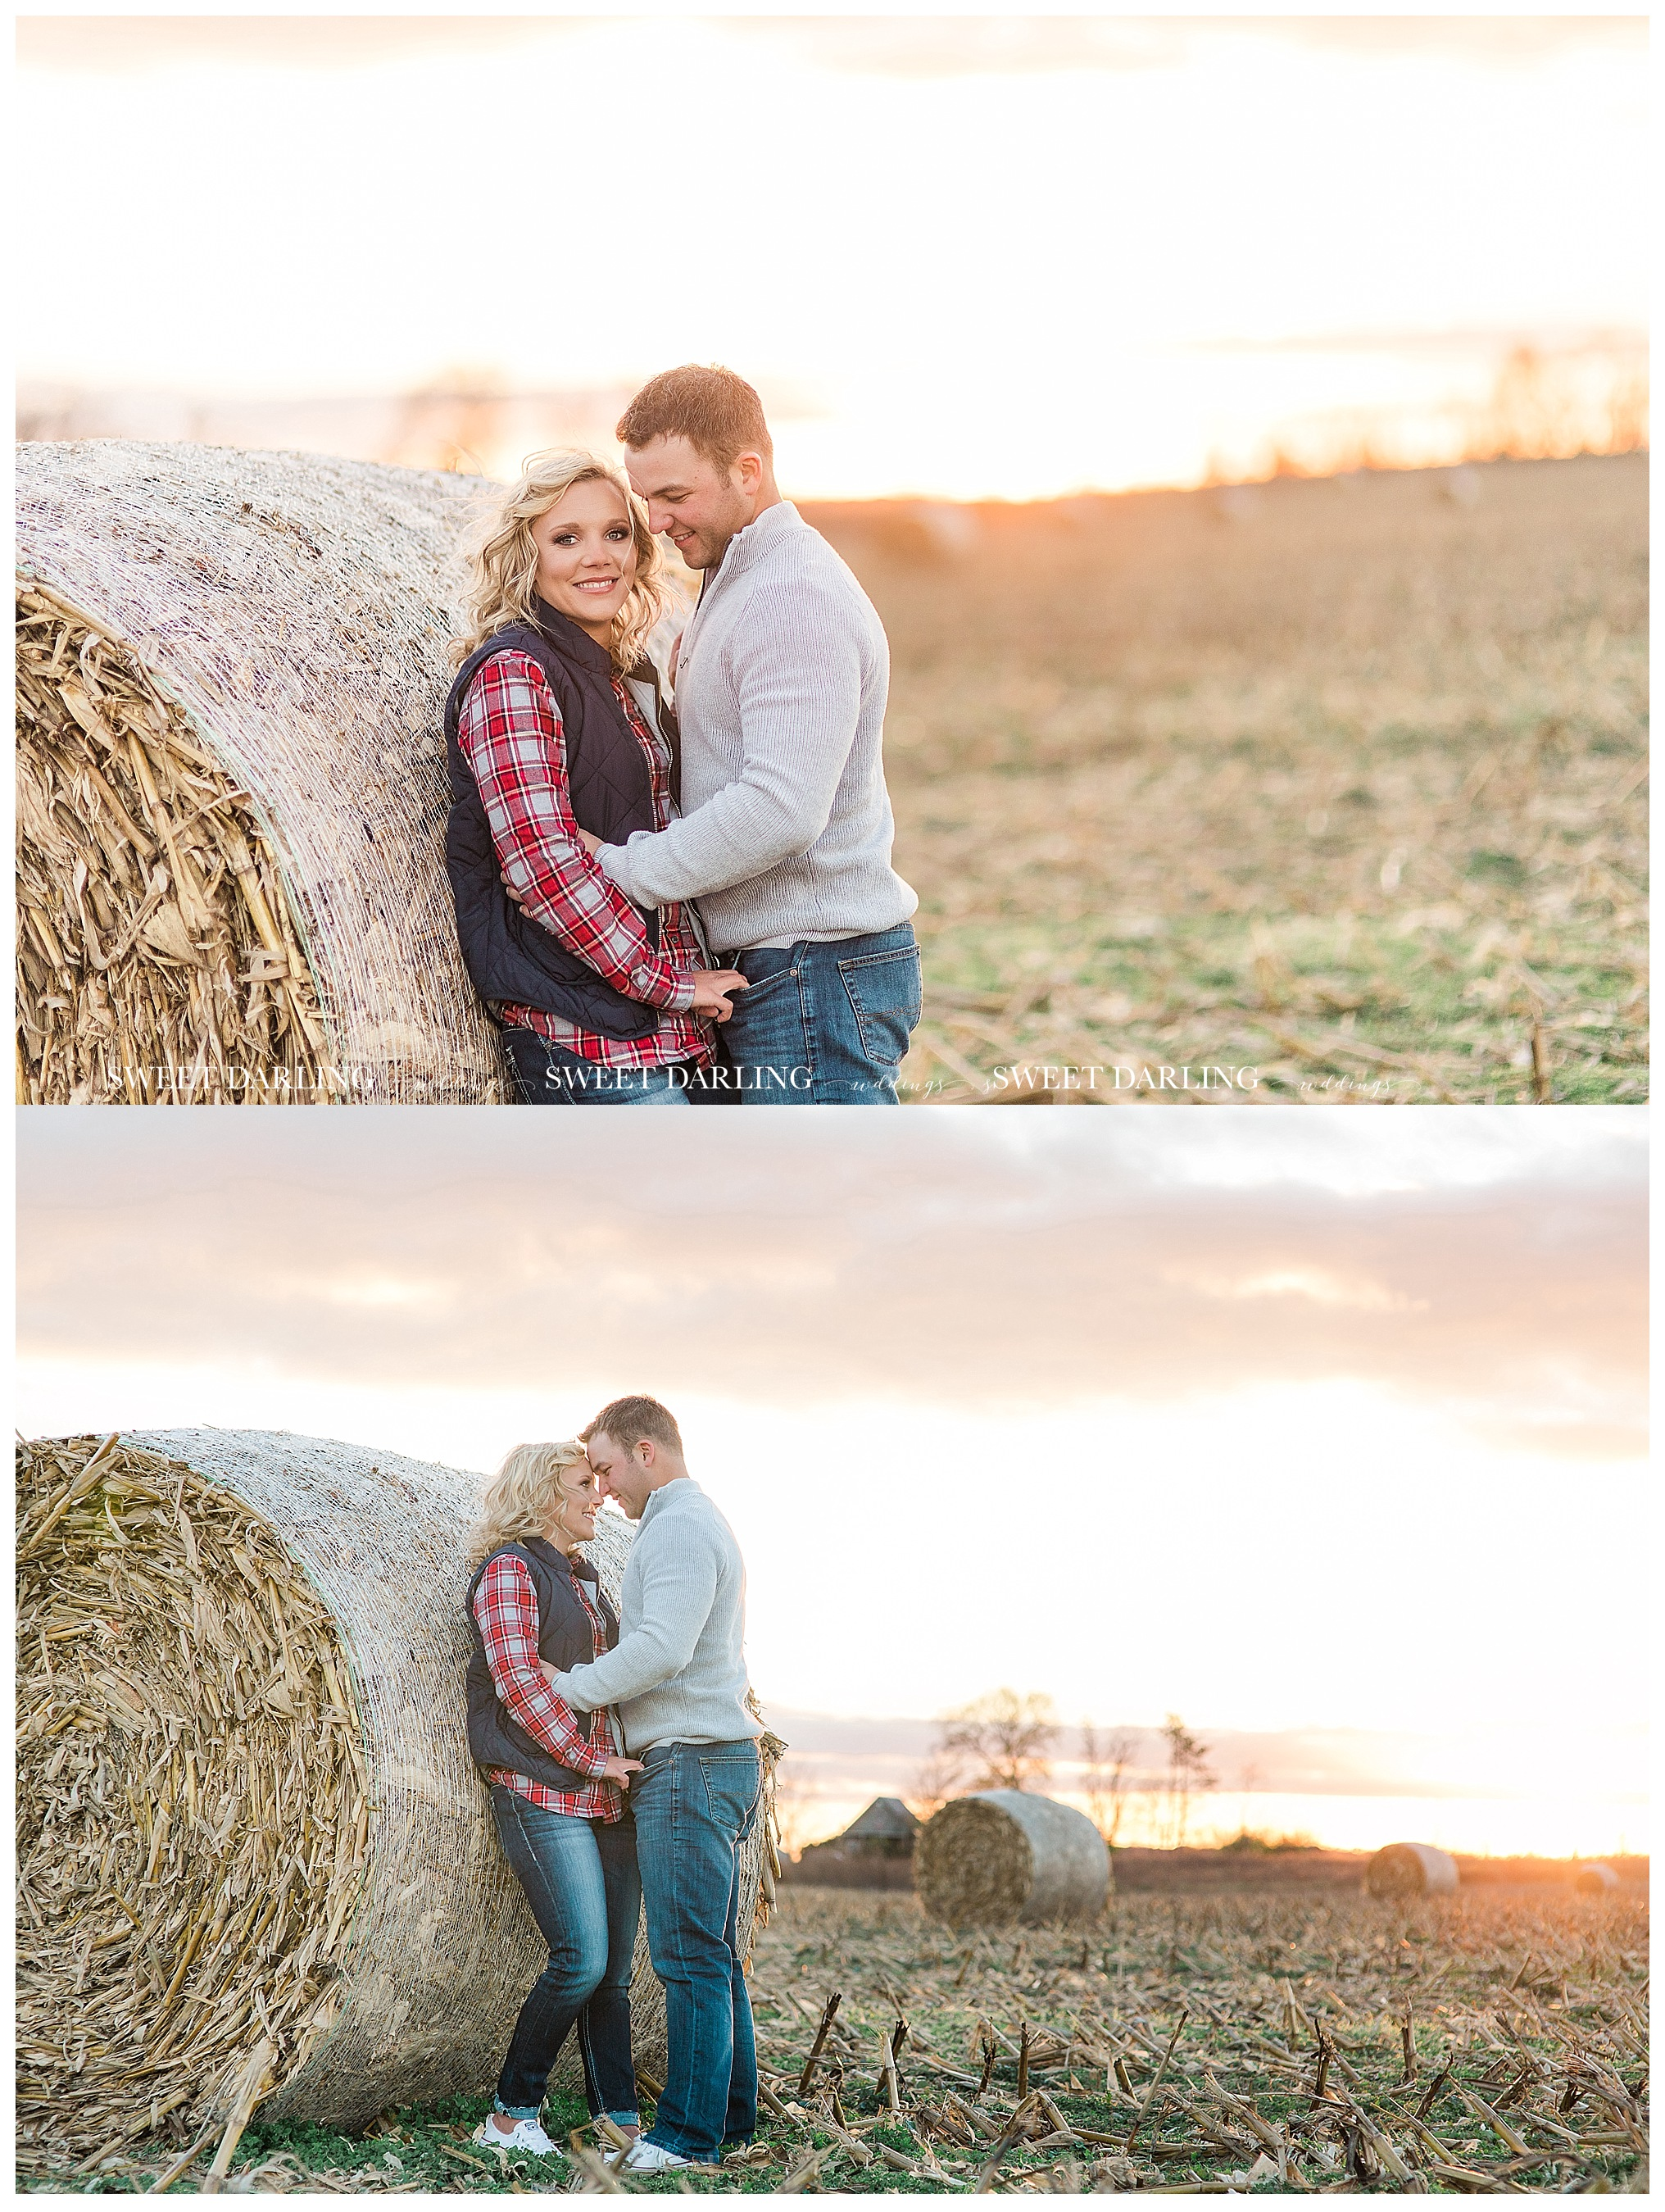 paxton-illinois-sweet-darling-weddings-photography-fall-engagement-session-ring-state-park_1009.jpg